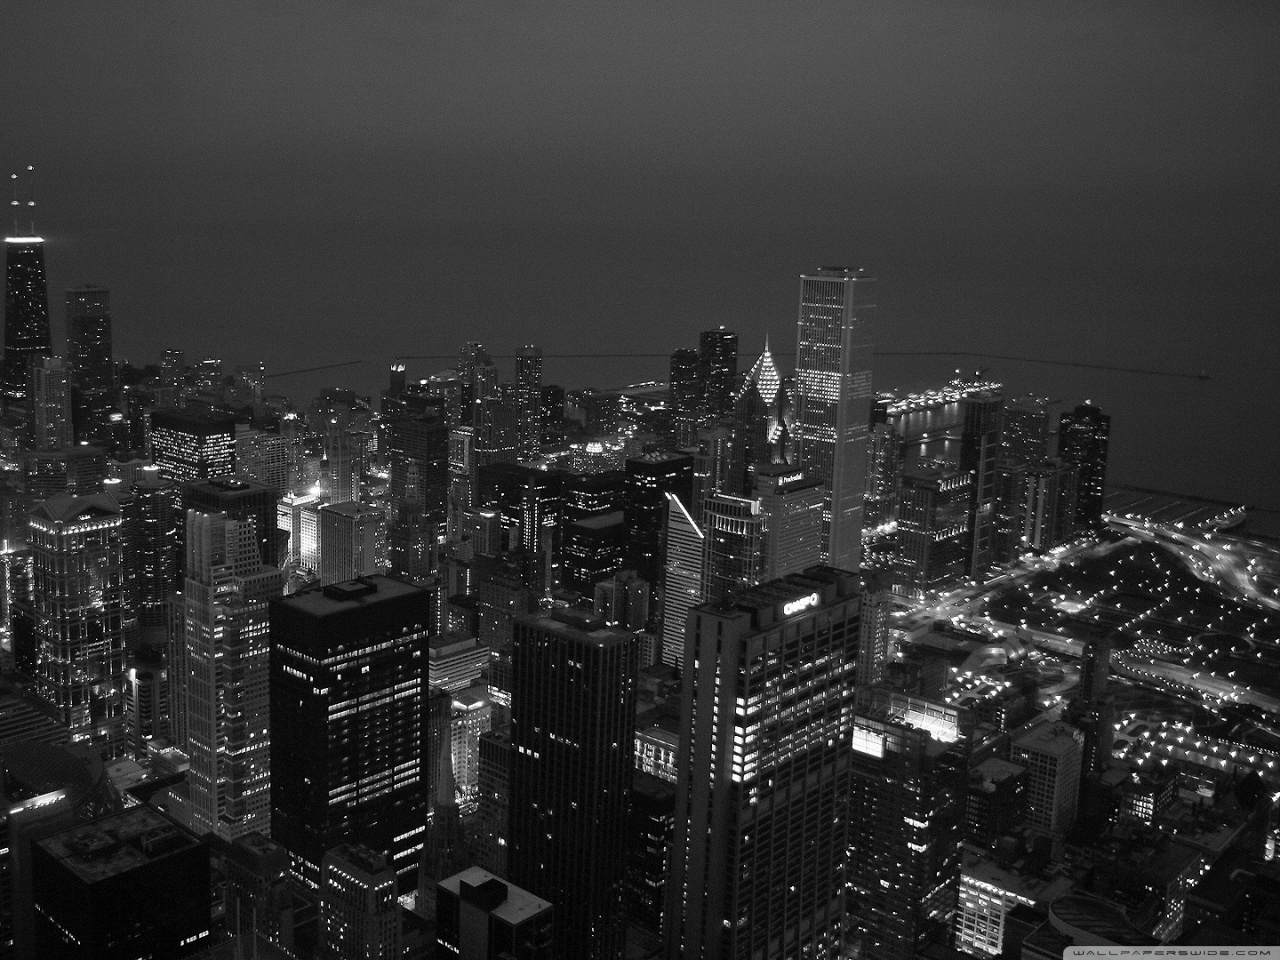 Image of Downtown Chicago and Willis Tower